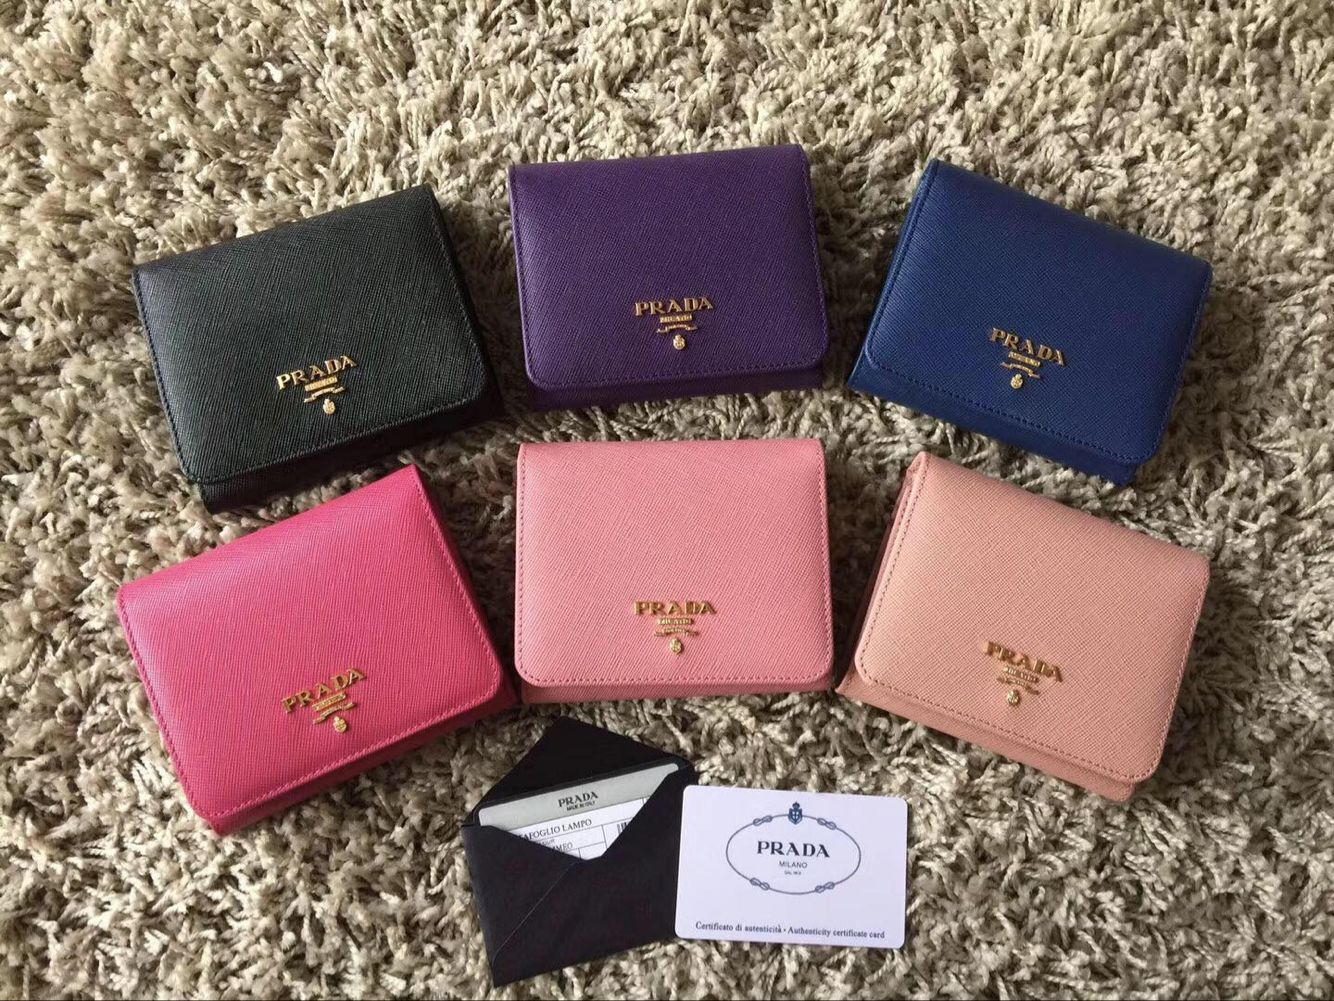 Prada Saffiano Leather Tri-Fold Wallet 1MH524